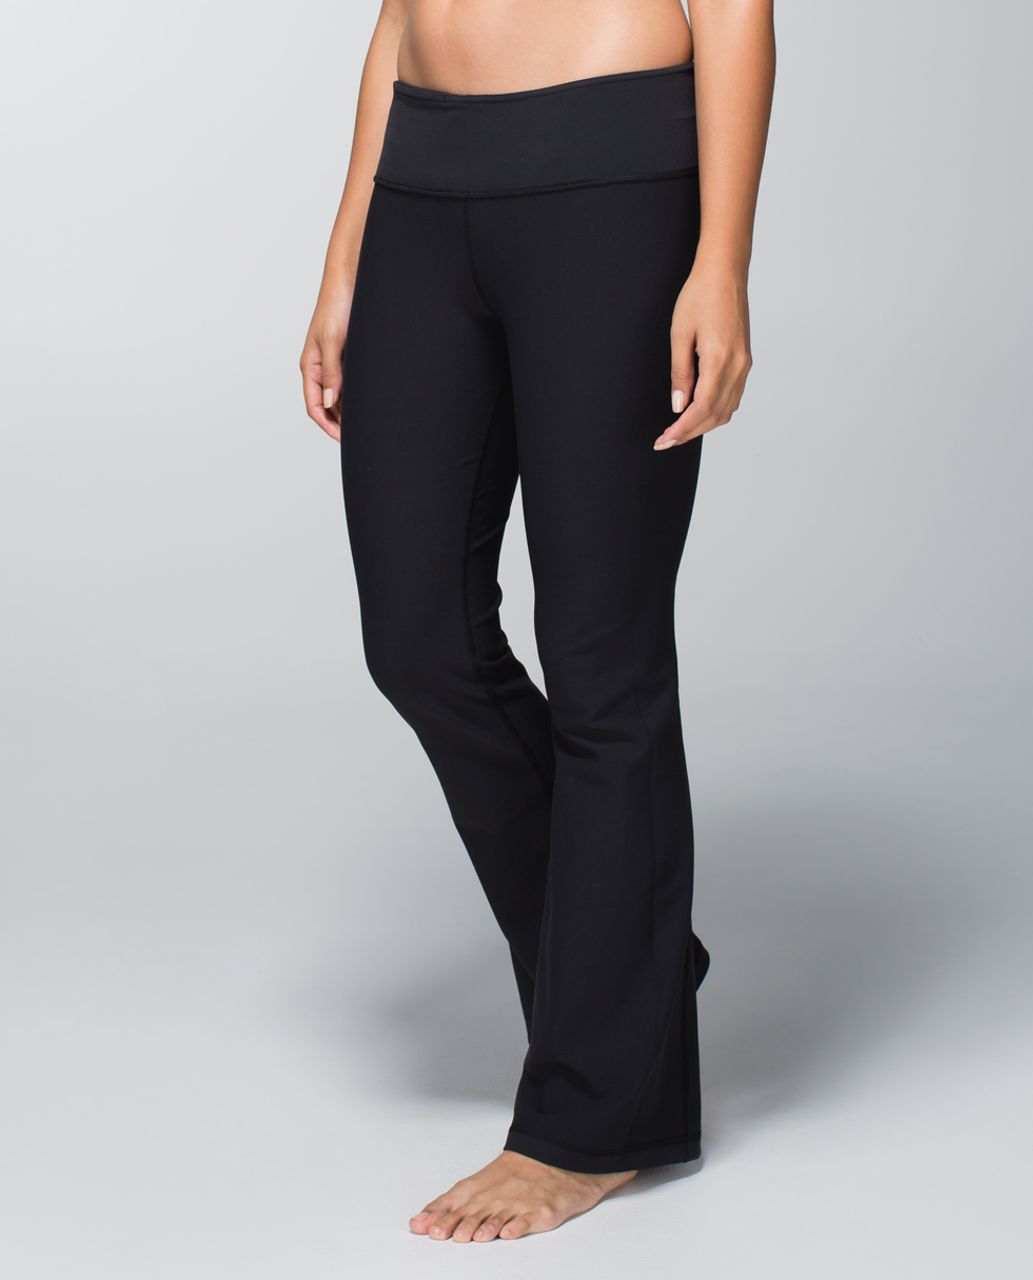 Lululemon Groove Pant *Full-On Luon (Tall) - Black / Fa14 Quilt 9